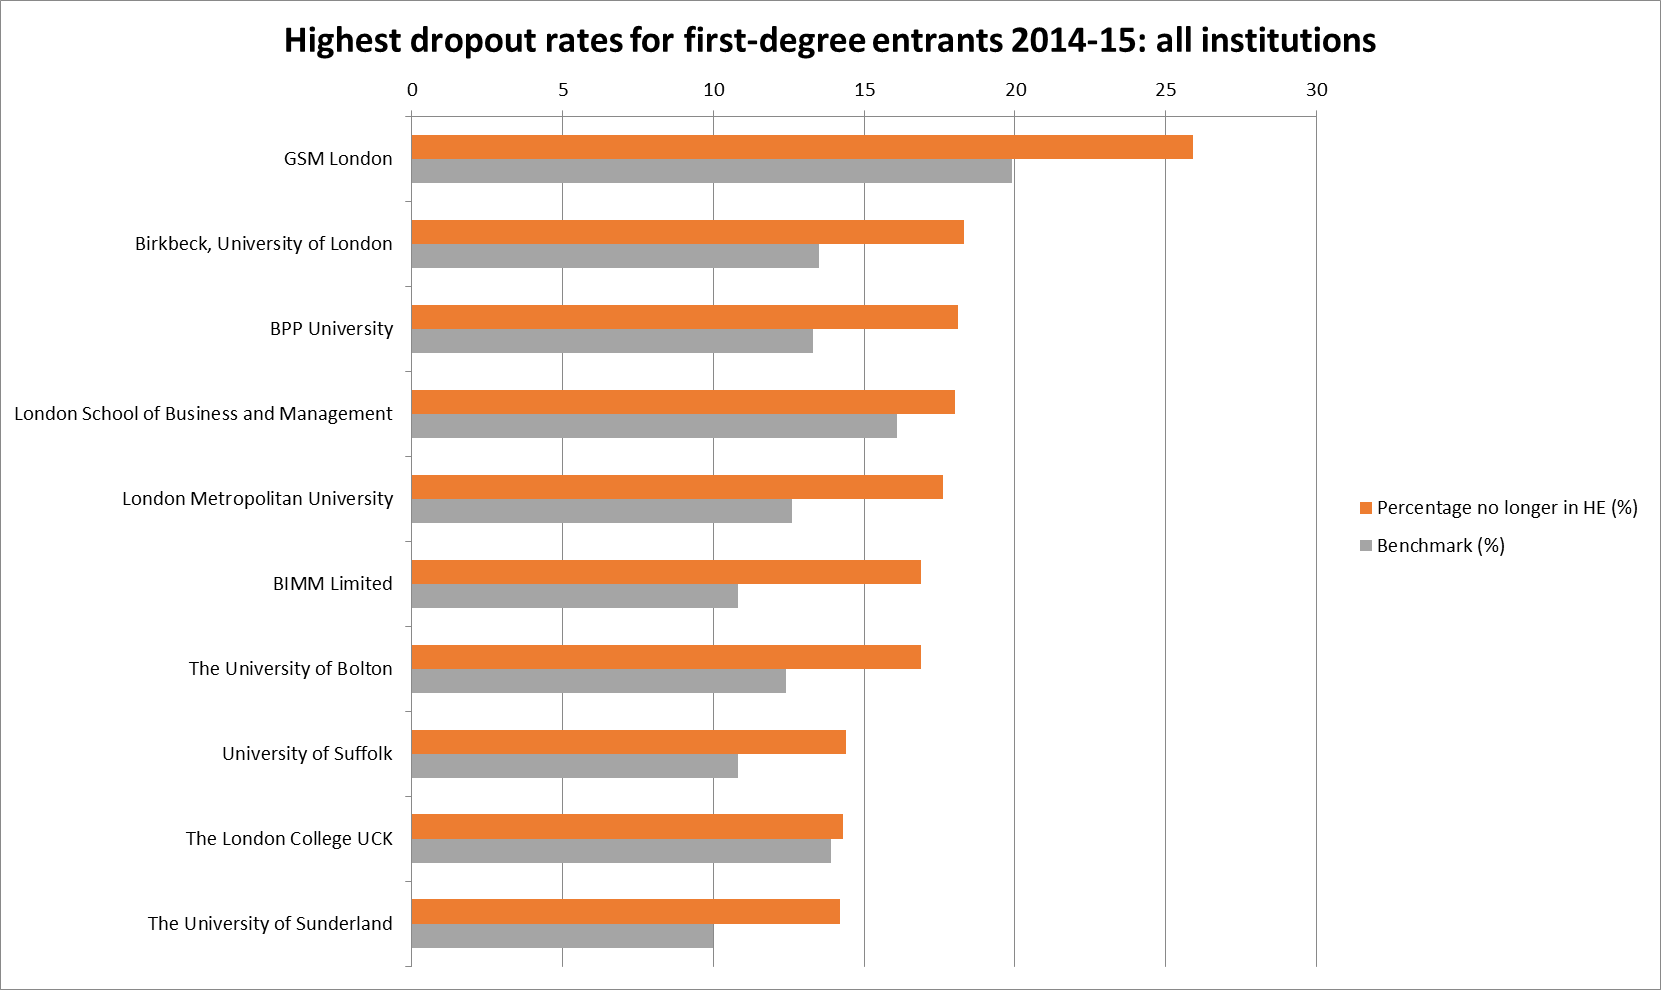 Ten highest dropout rates in England in 2014-15